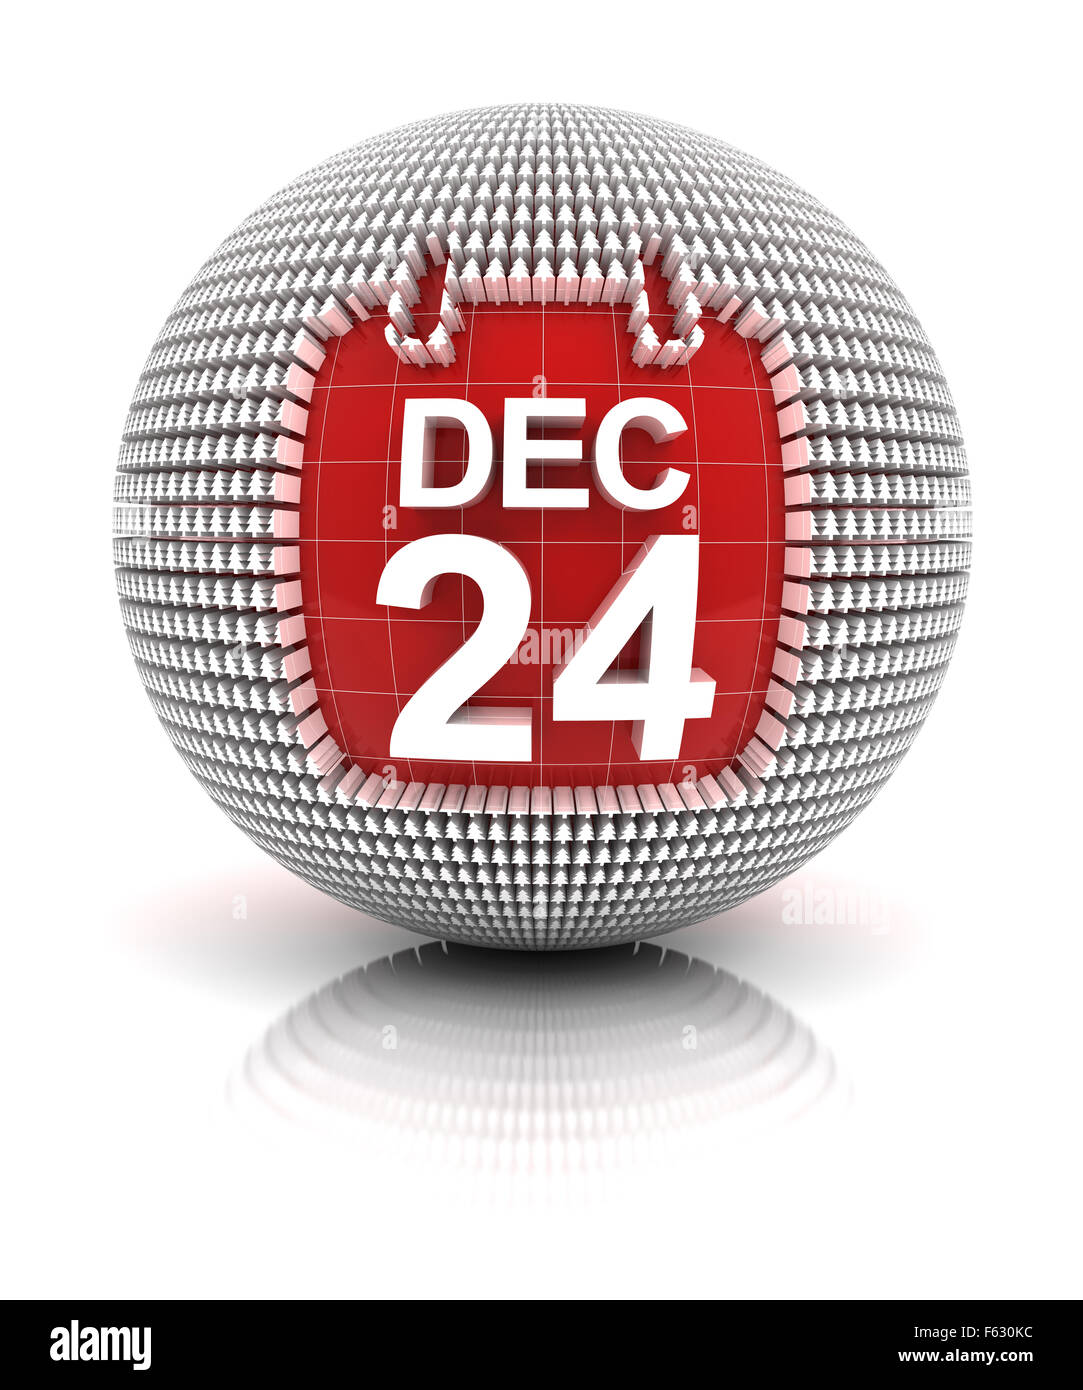 Christmas eve icon - Stock Image